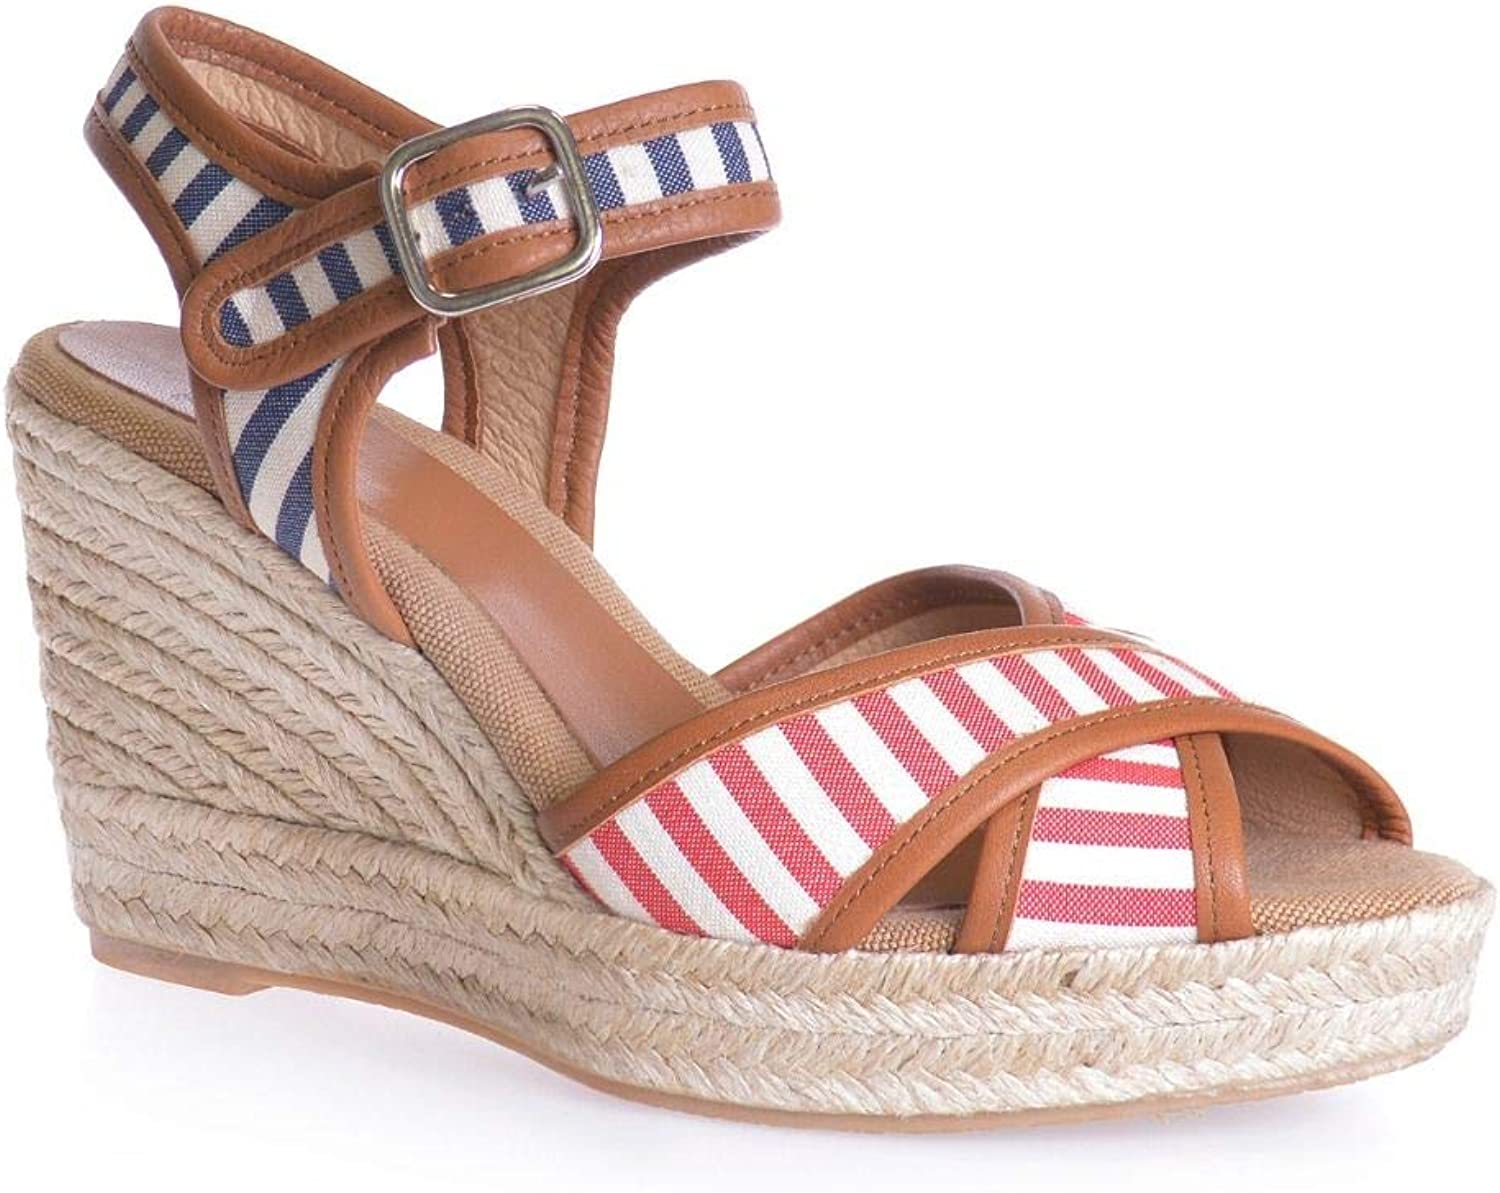 Toni Pons Arles-RT - Espadrille for Woman Made in Fabric.